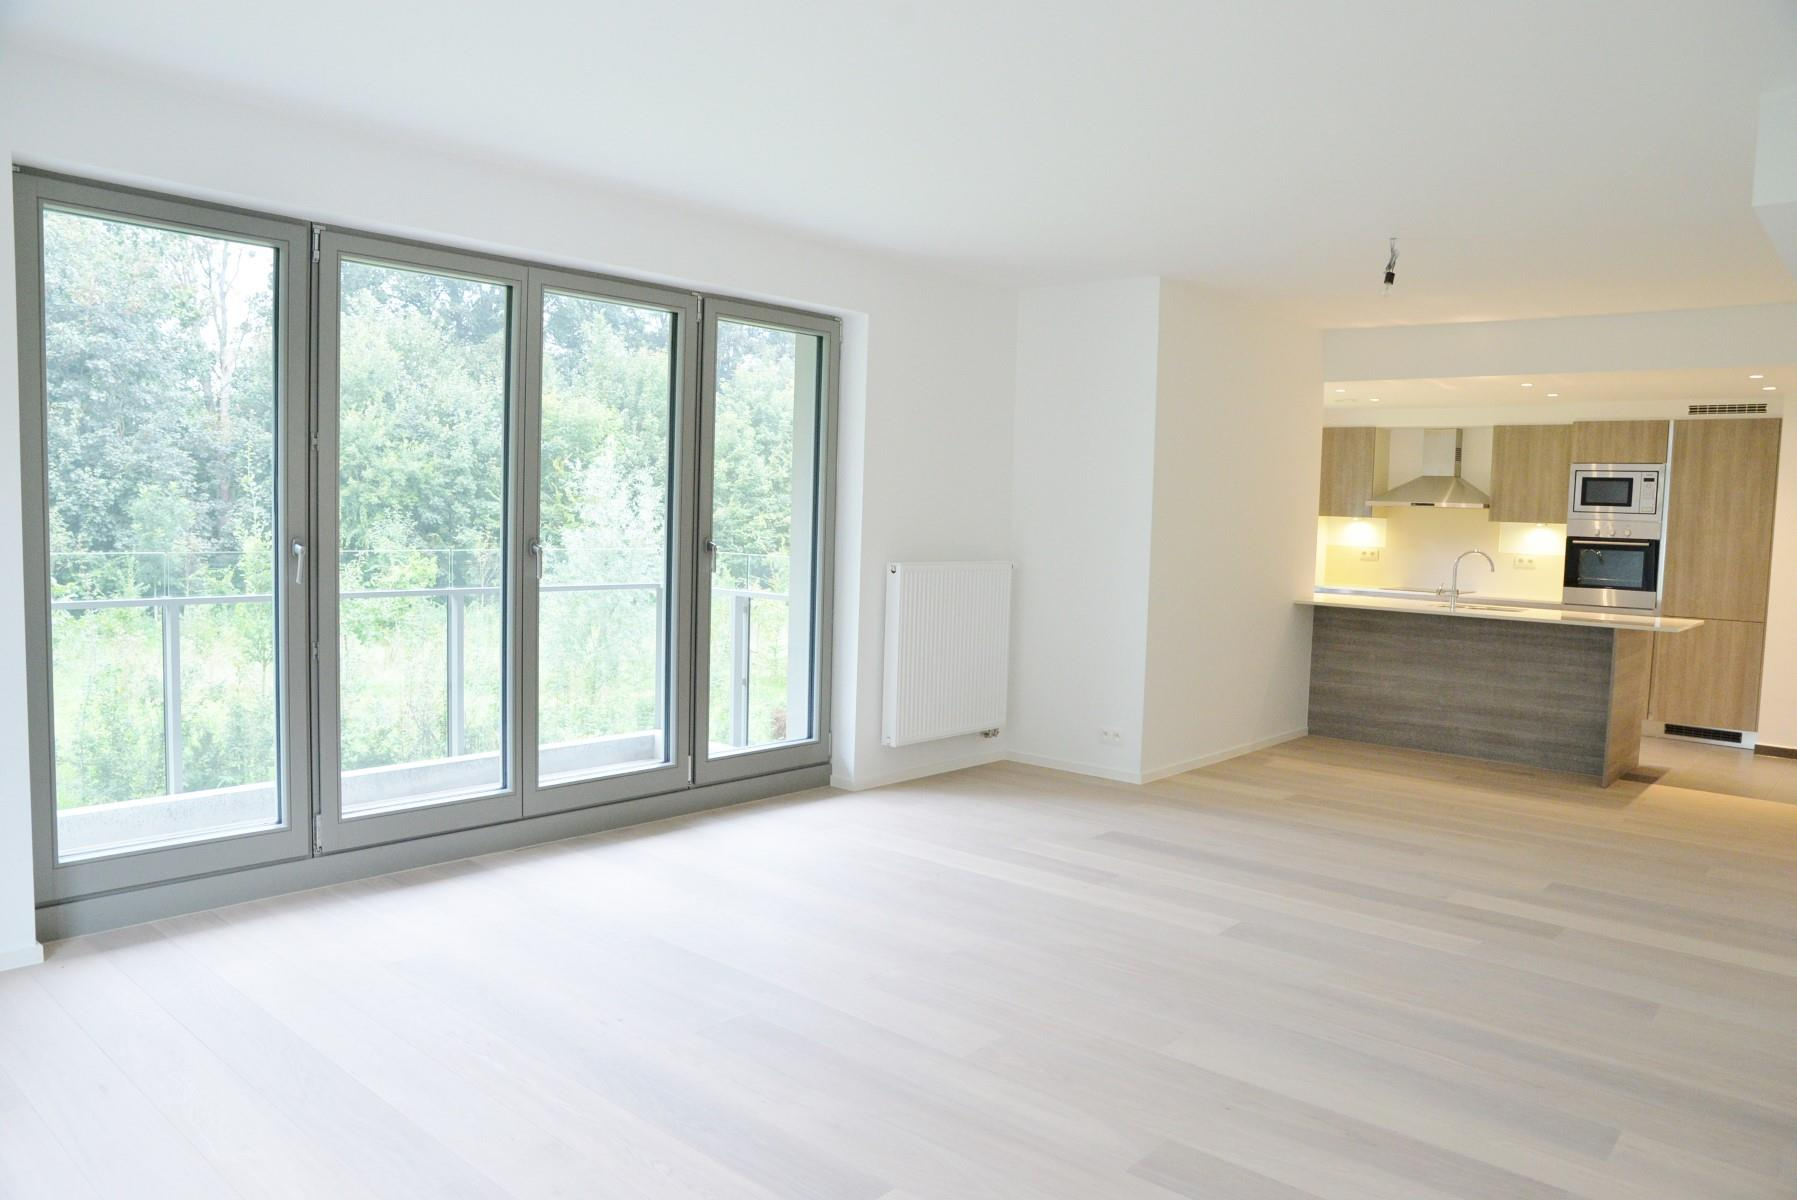 Appartement exceptionnel - Uccle - #4051009-1